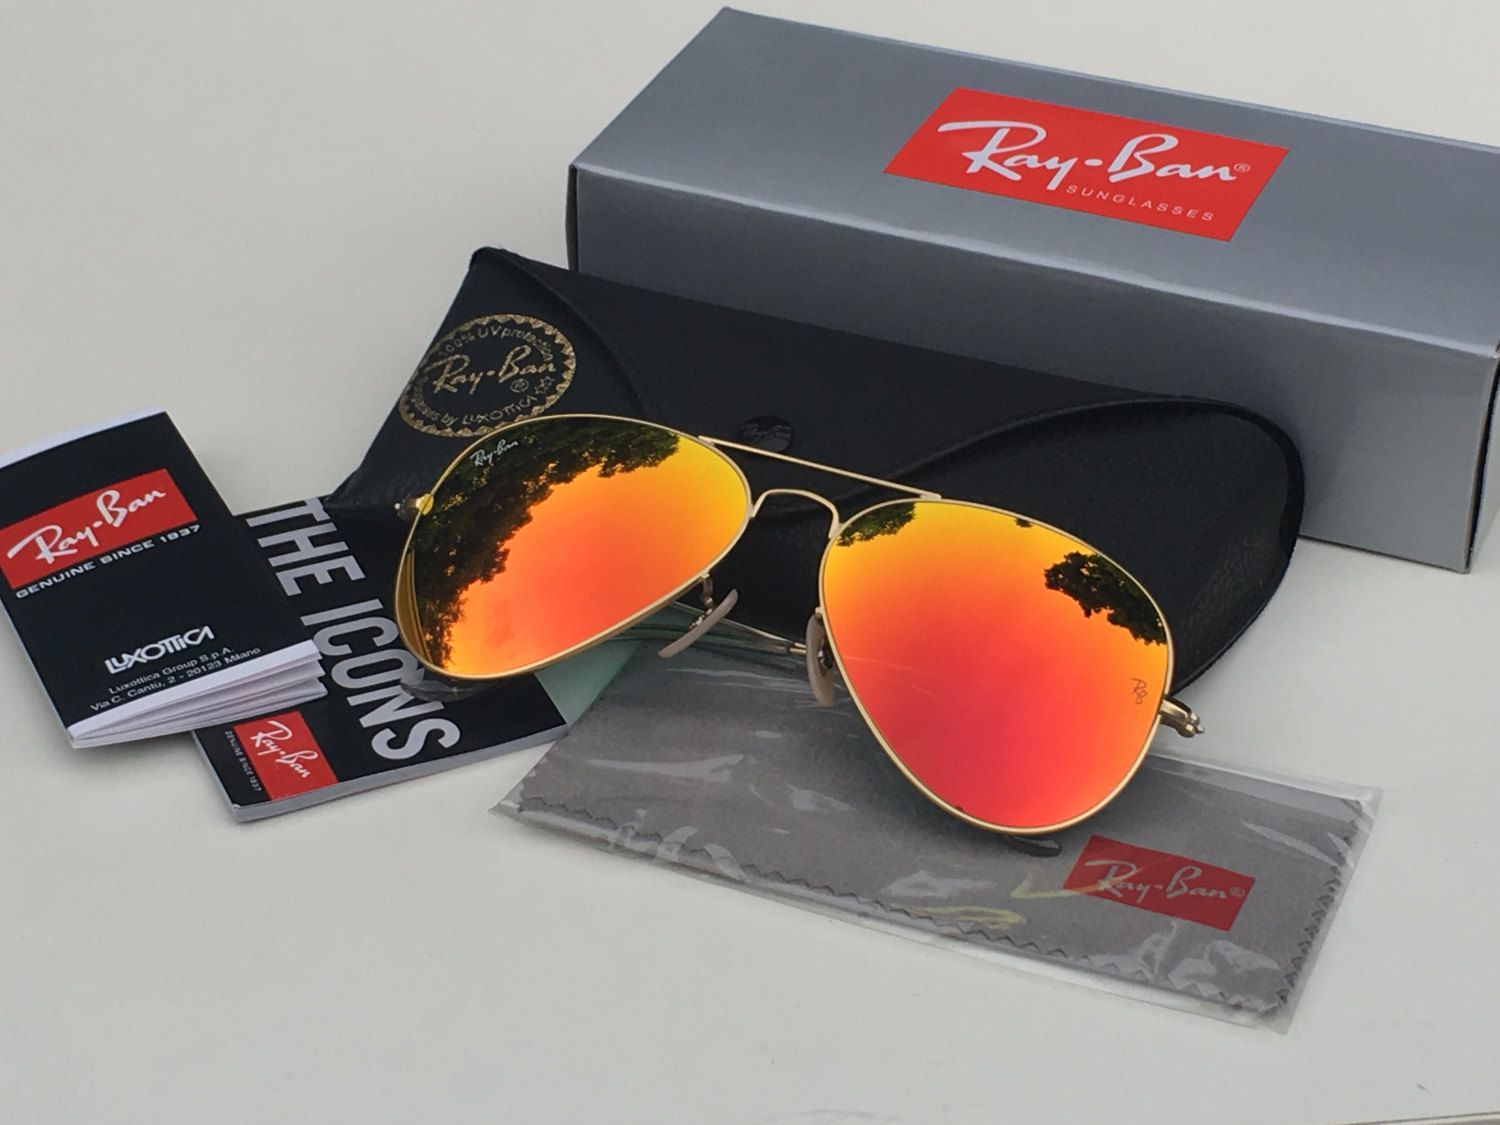 301884a184ee1 Authentic RAY-BAN Aviator Sunglasses Blue Flash Mirrored Gold Frame Unisex  - RB3025 112 69 58mm (Brand New RayBan - With Accessories   Case) by ...